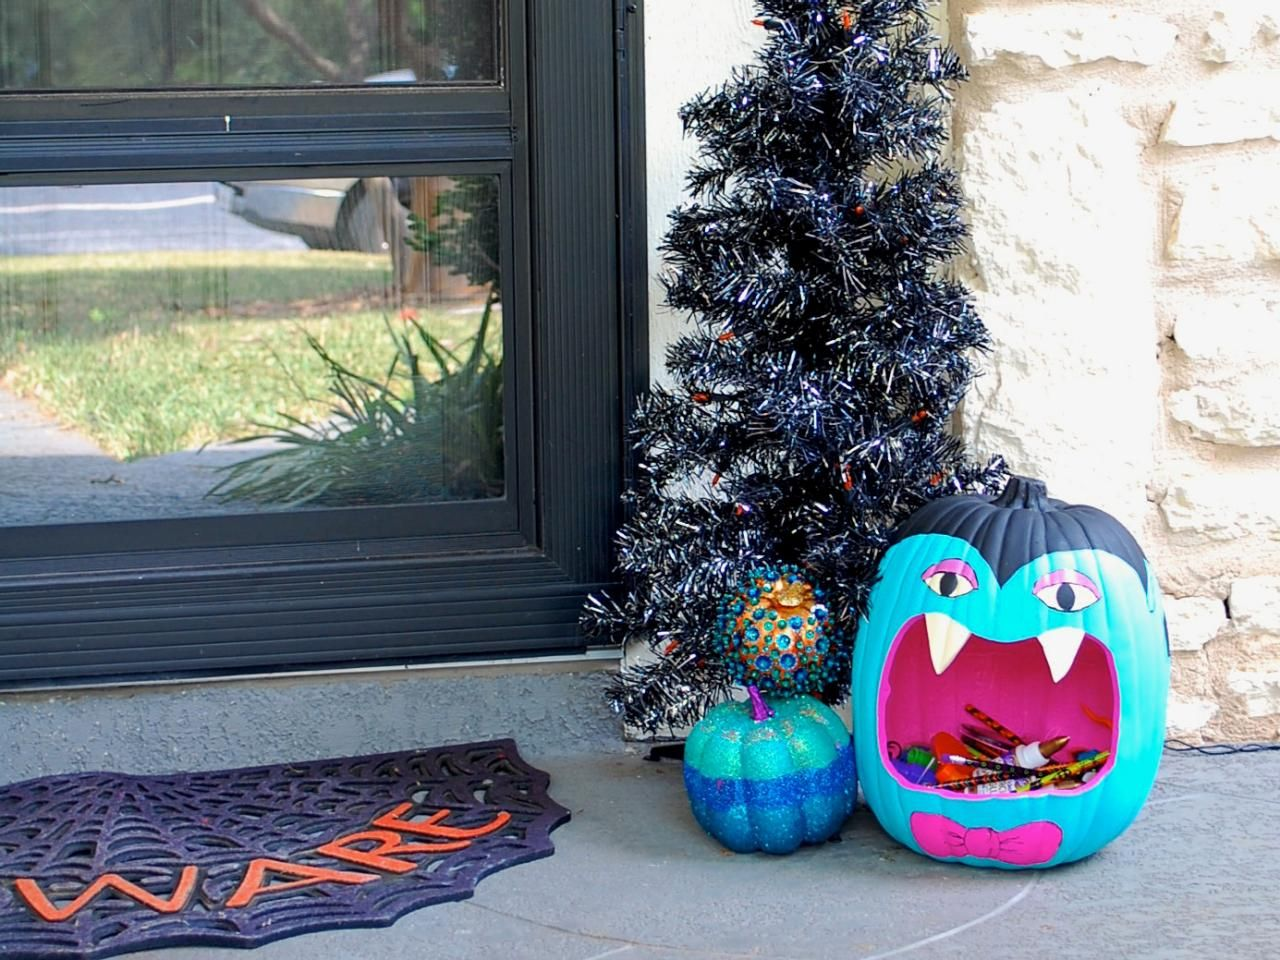 Halloween Decorations DIY Halloween, Teal pumpkin and Whimsical - Whimsical Halloween Decorations